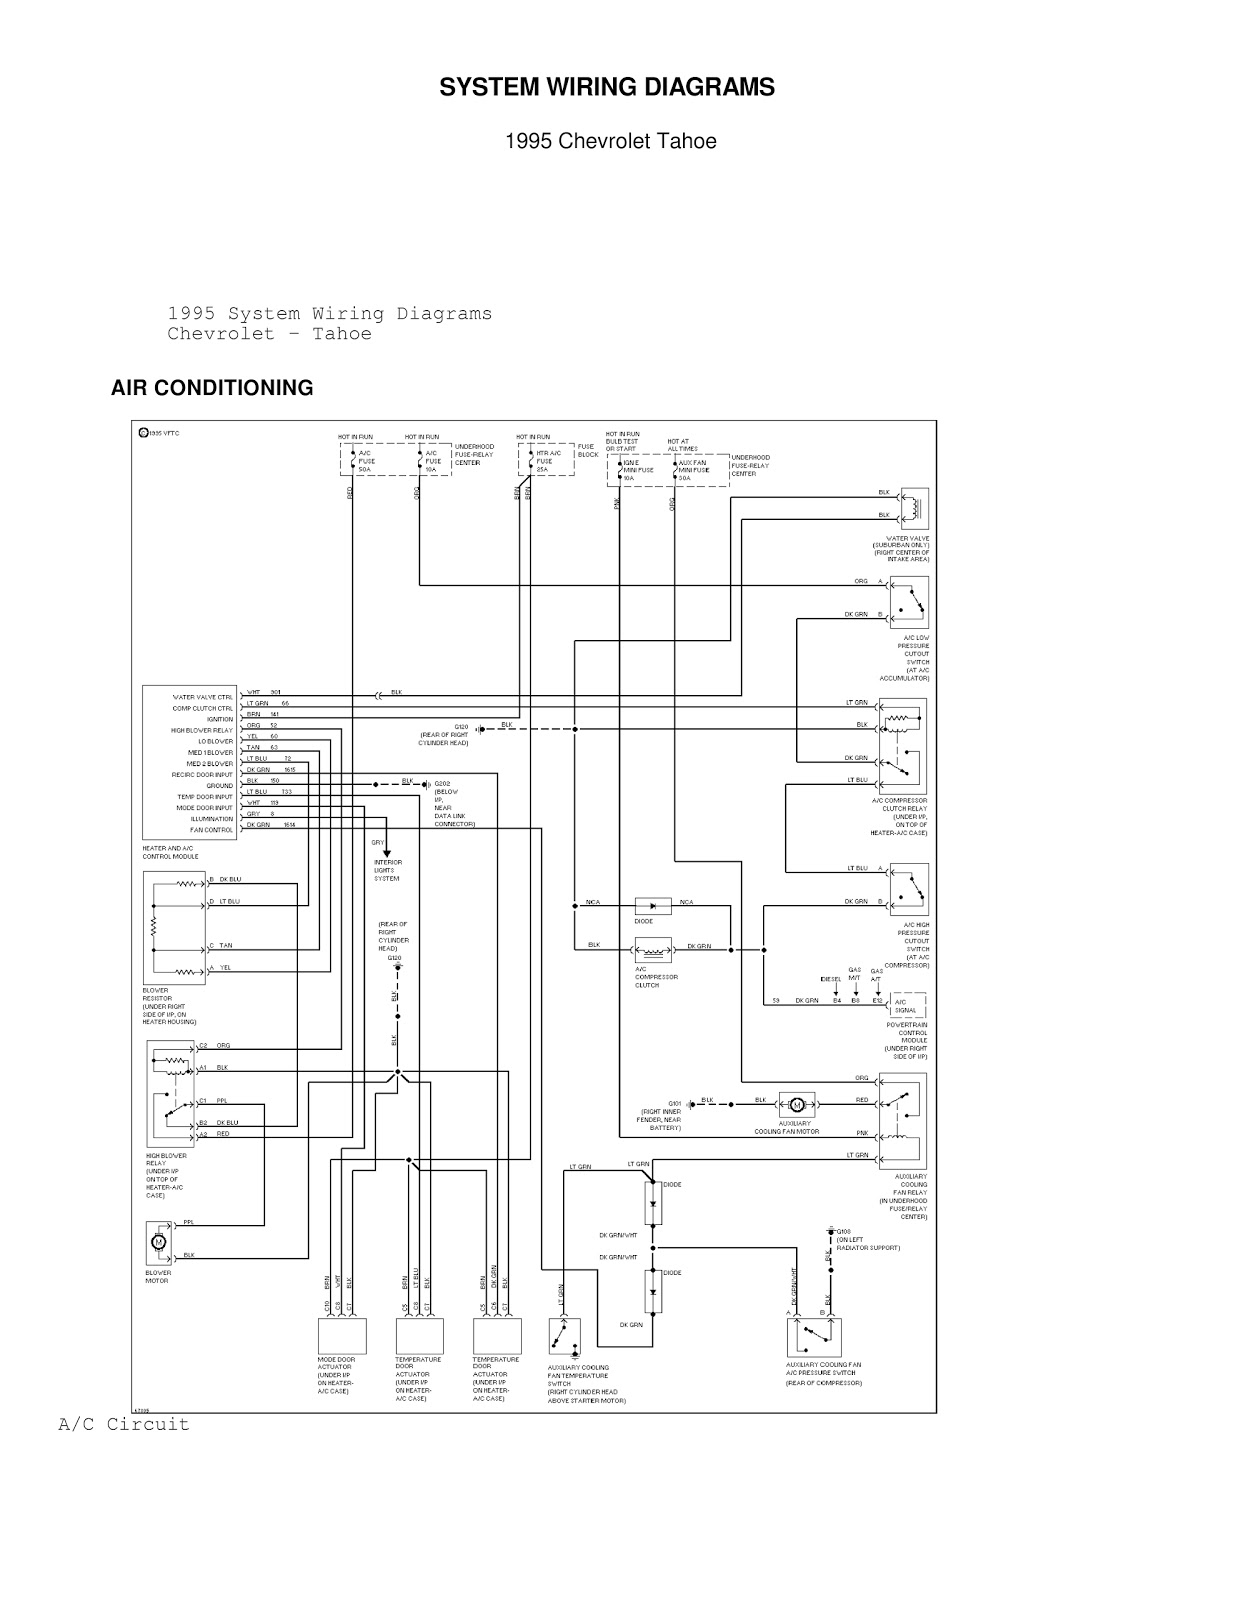 [DIAGRAM] 2003 Chevy Tahoe Window Wiring Diagram FULL